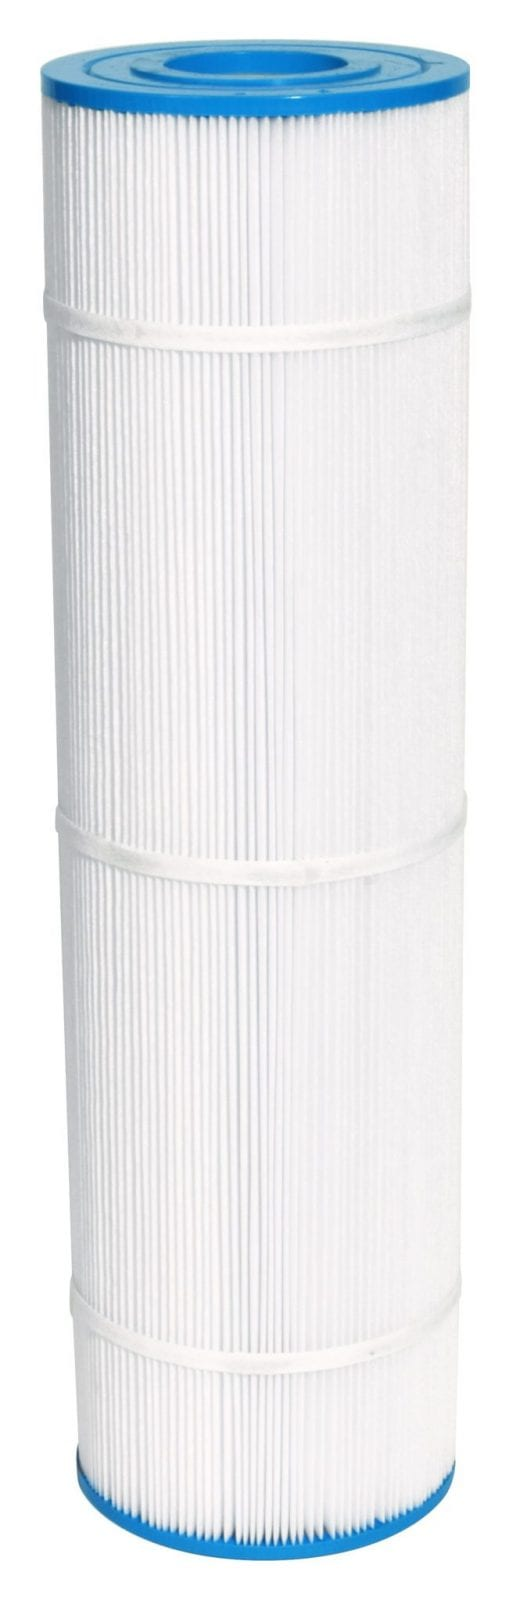 Cartridge Replacement B8370 Cartridge Filter 70 Square